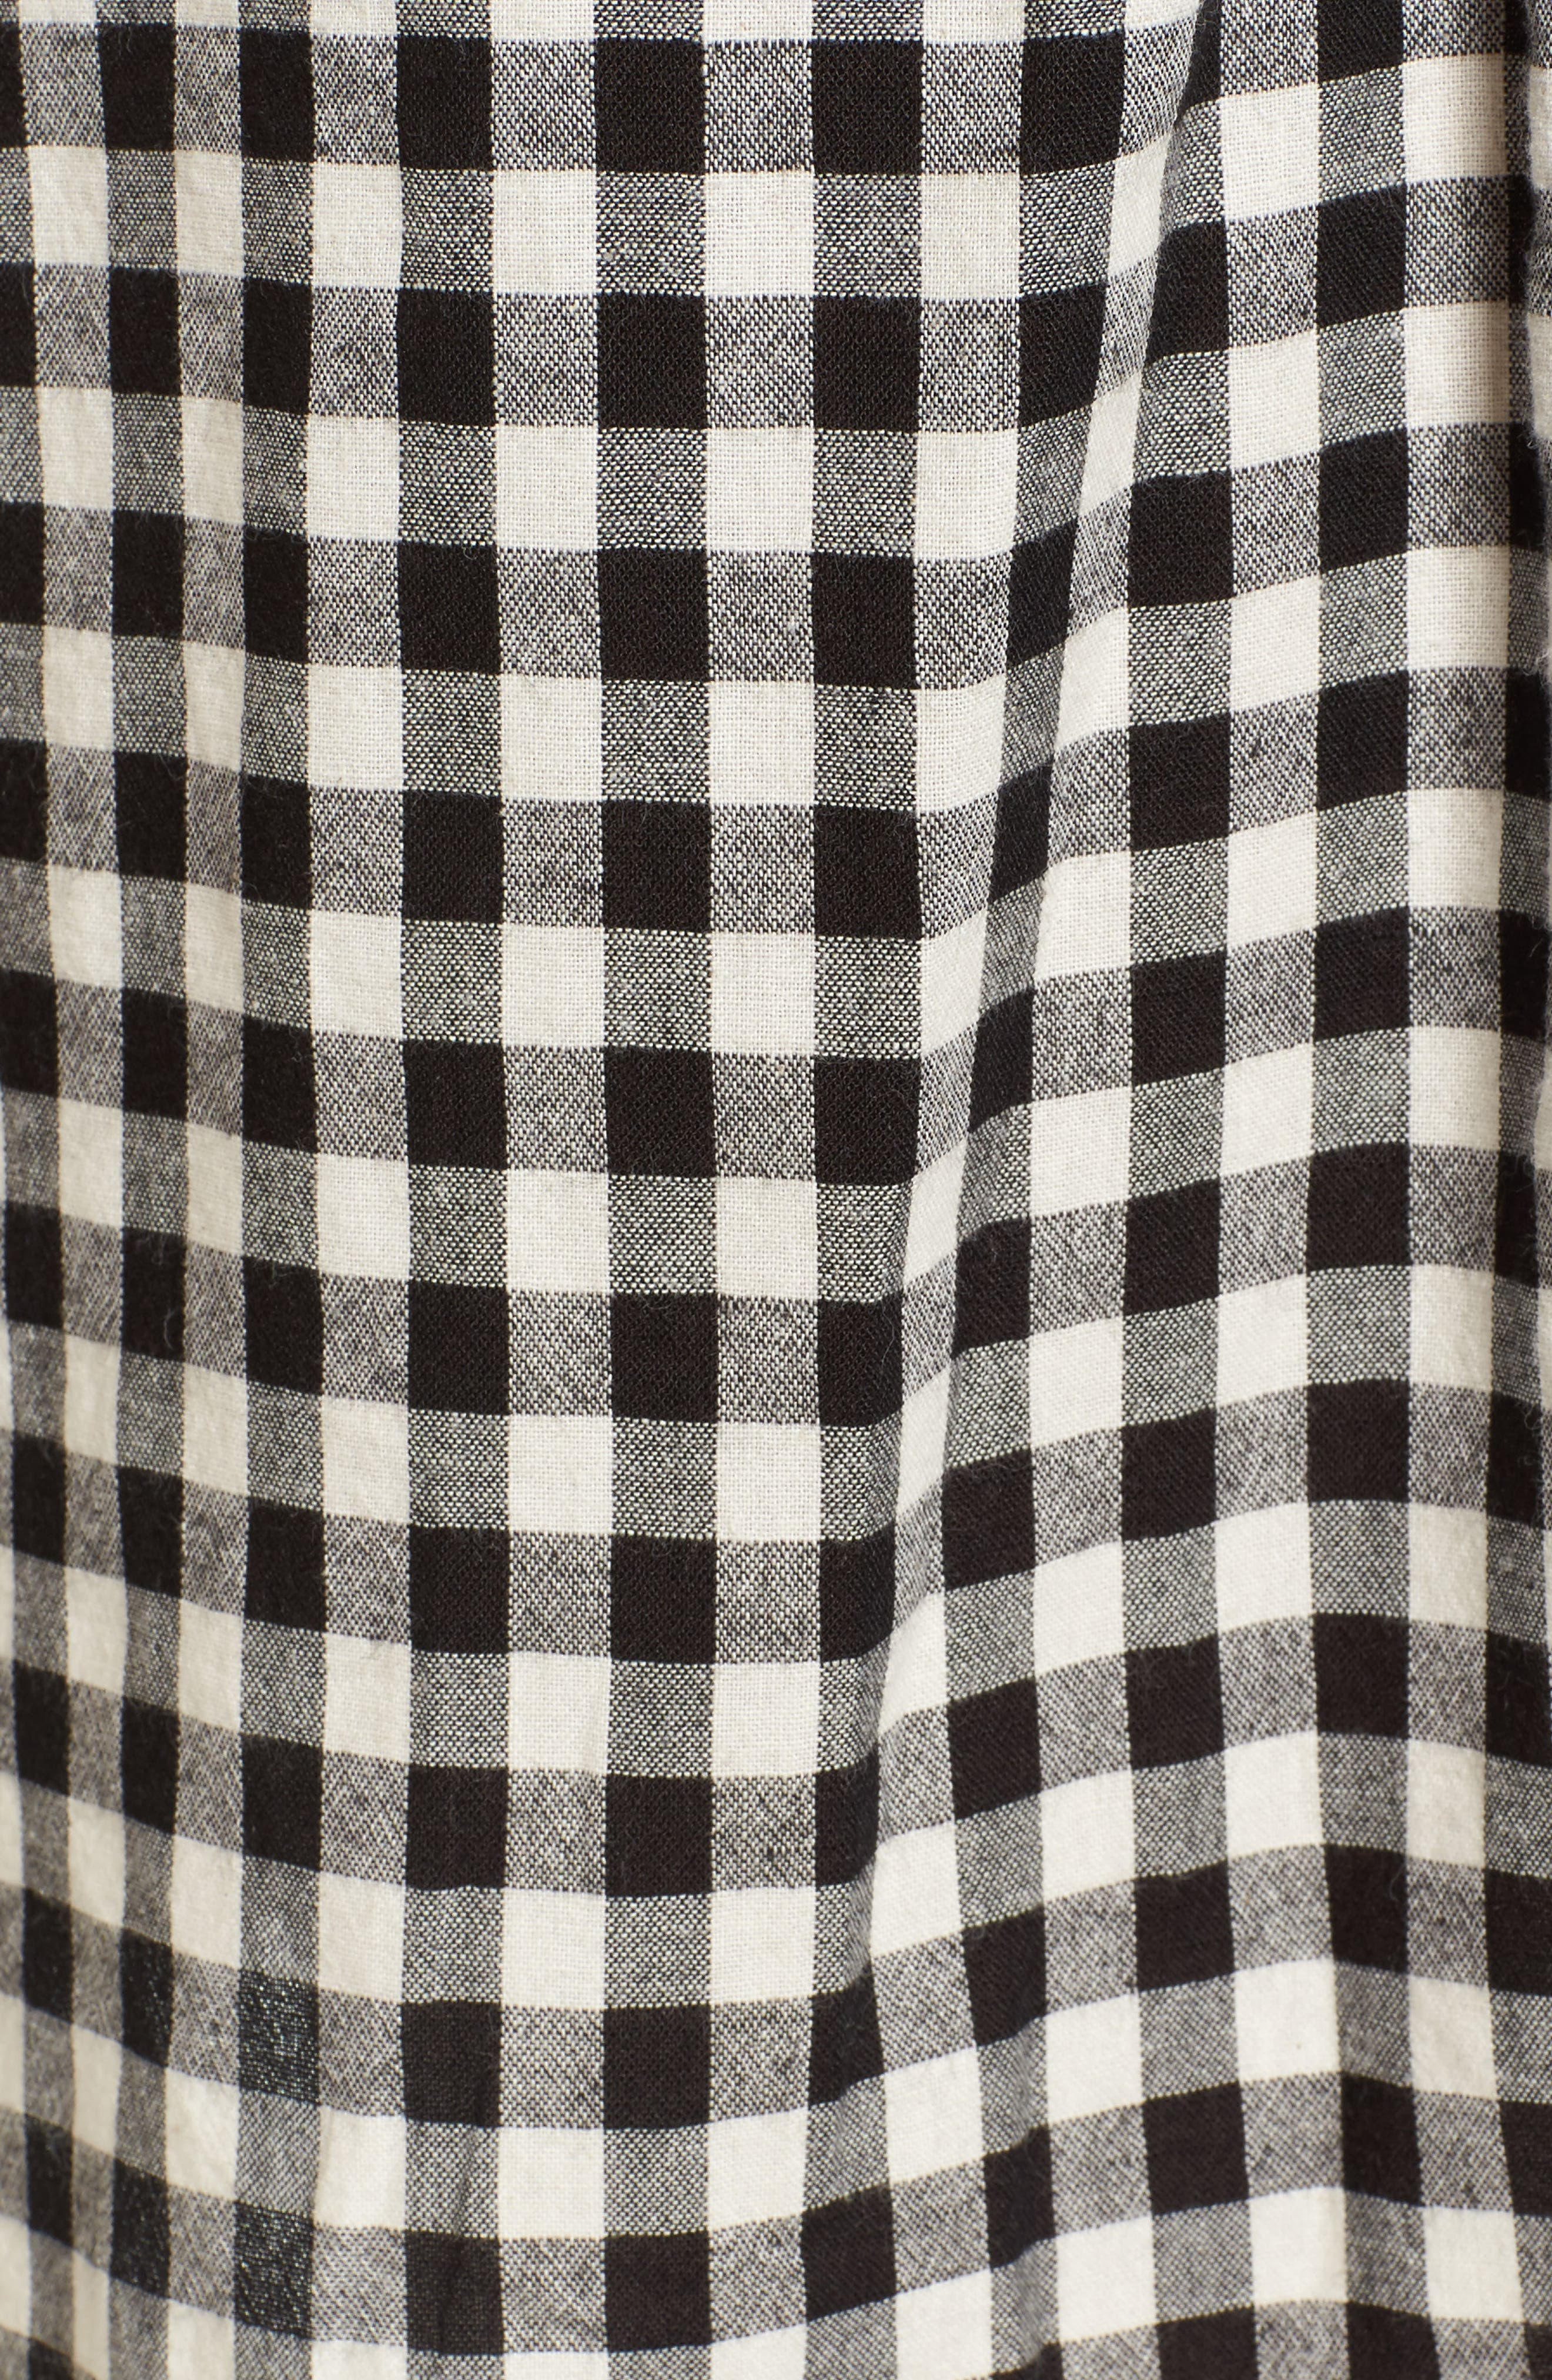 Lace-Up Gingham Dress,                             Alternate thumbnail 6, color,                             Black Gingham